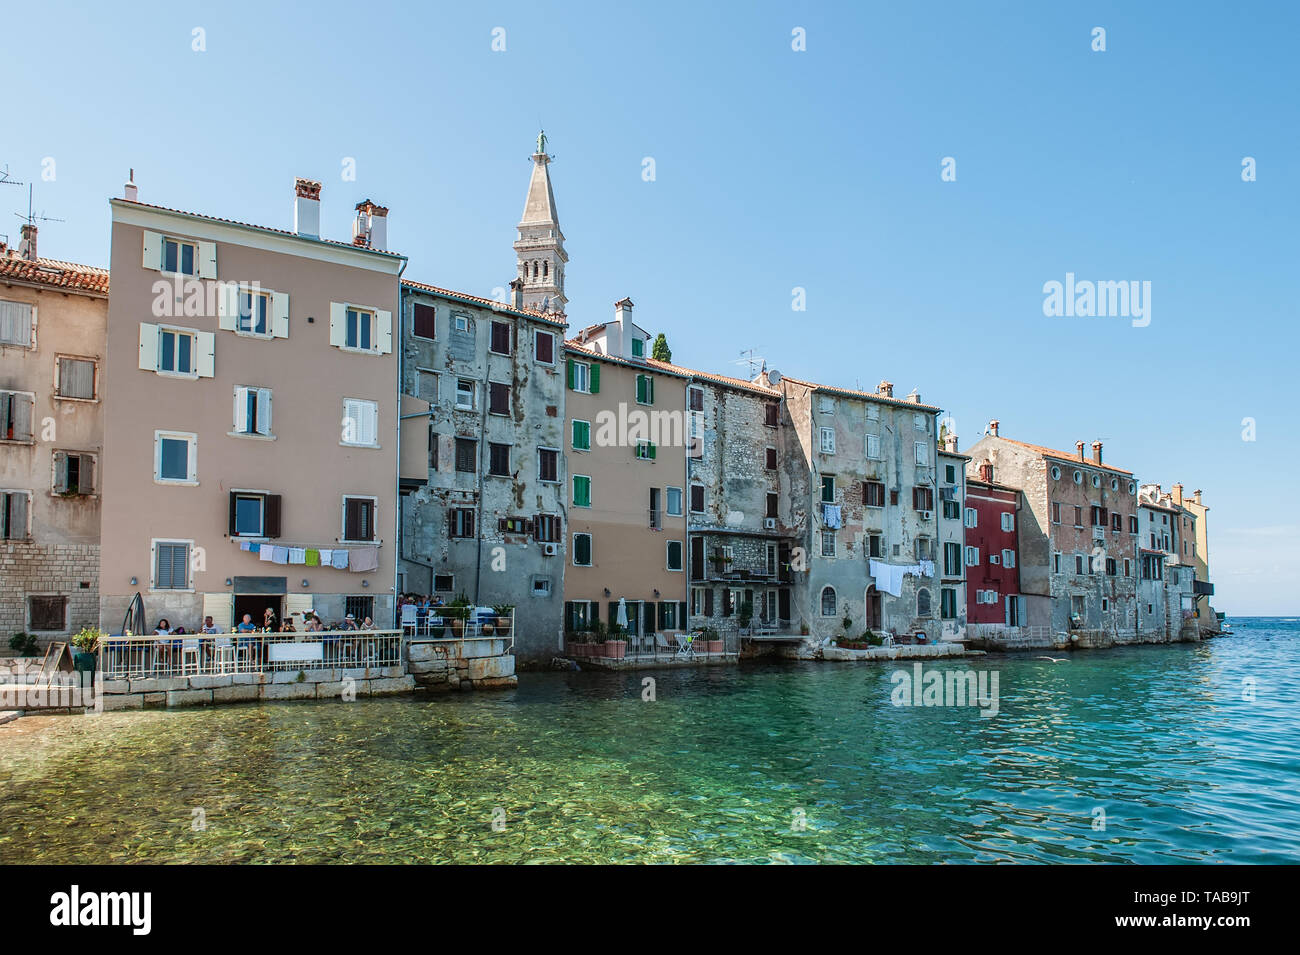 Beautiful and cozy medieval town of Rovinj, colorful with houses and church in Croatia, Europe. - Stock Image